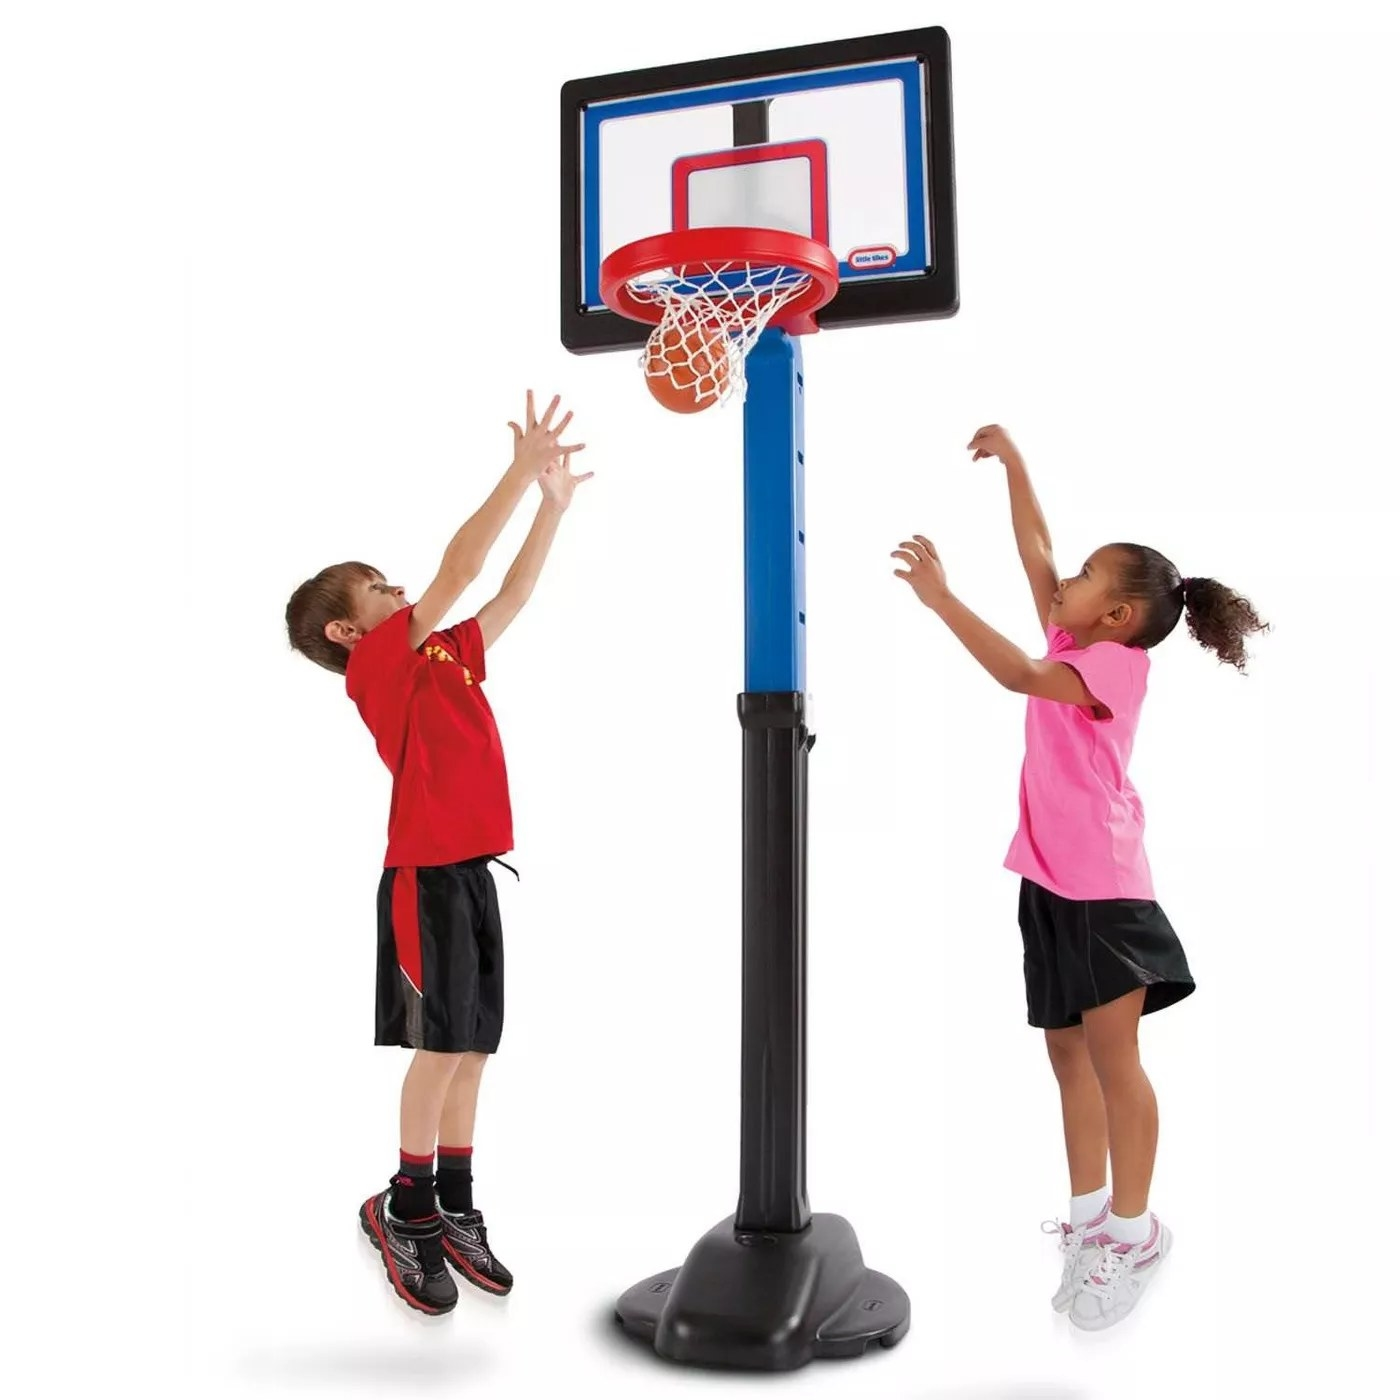 Two kids playing with the adjustable hoop and the included basketball